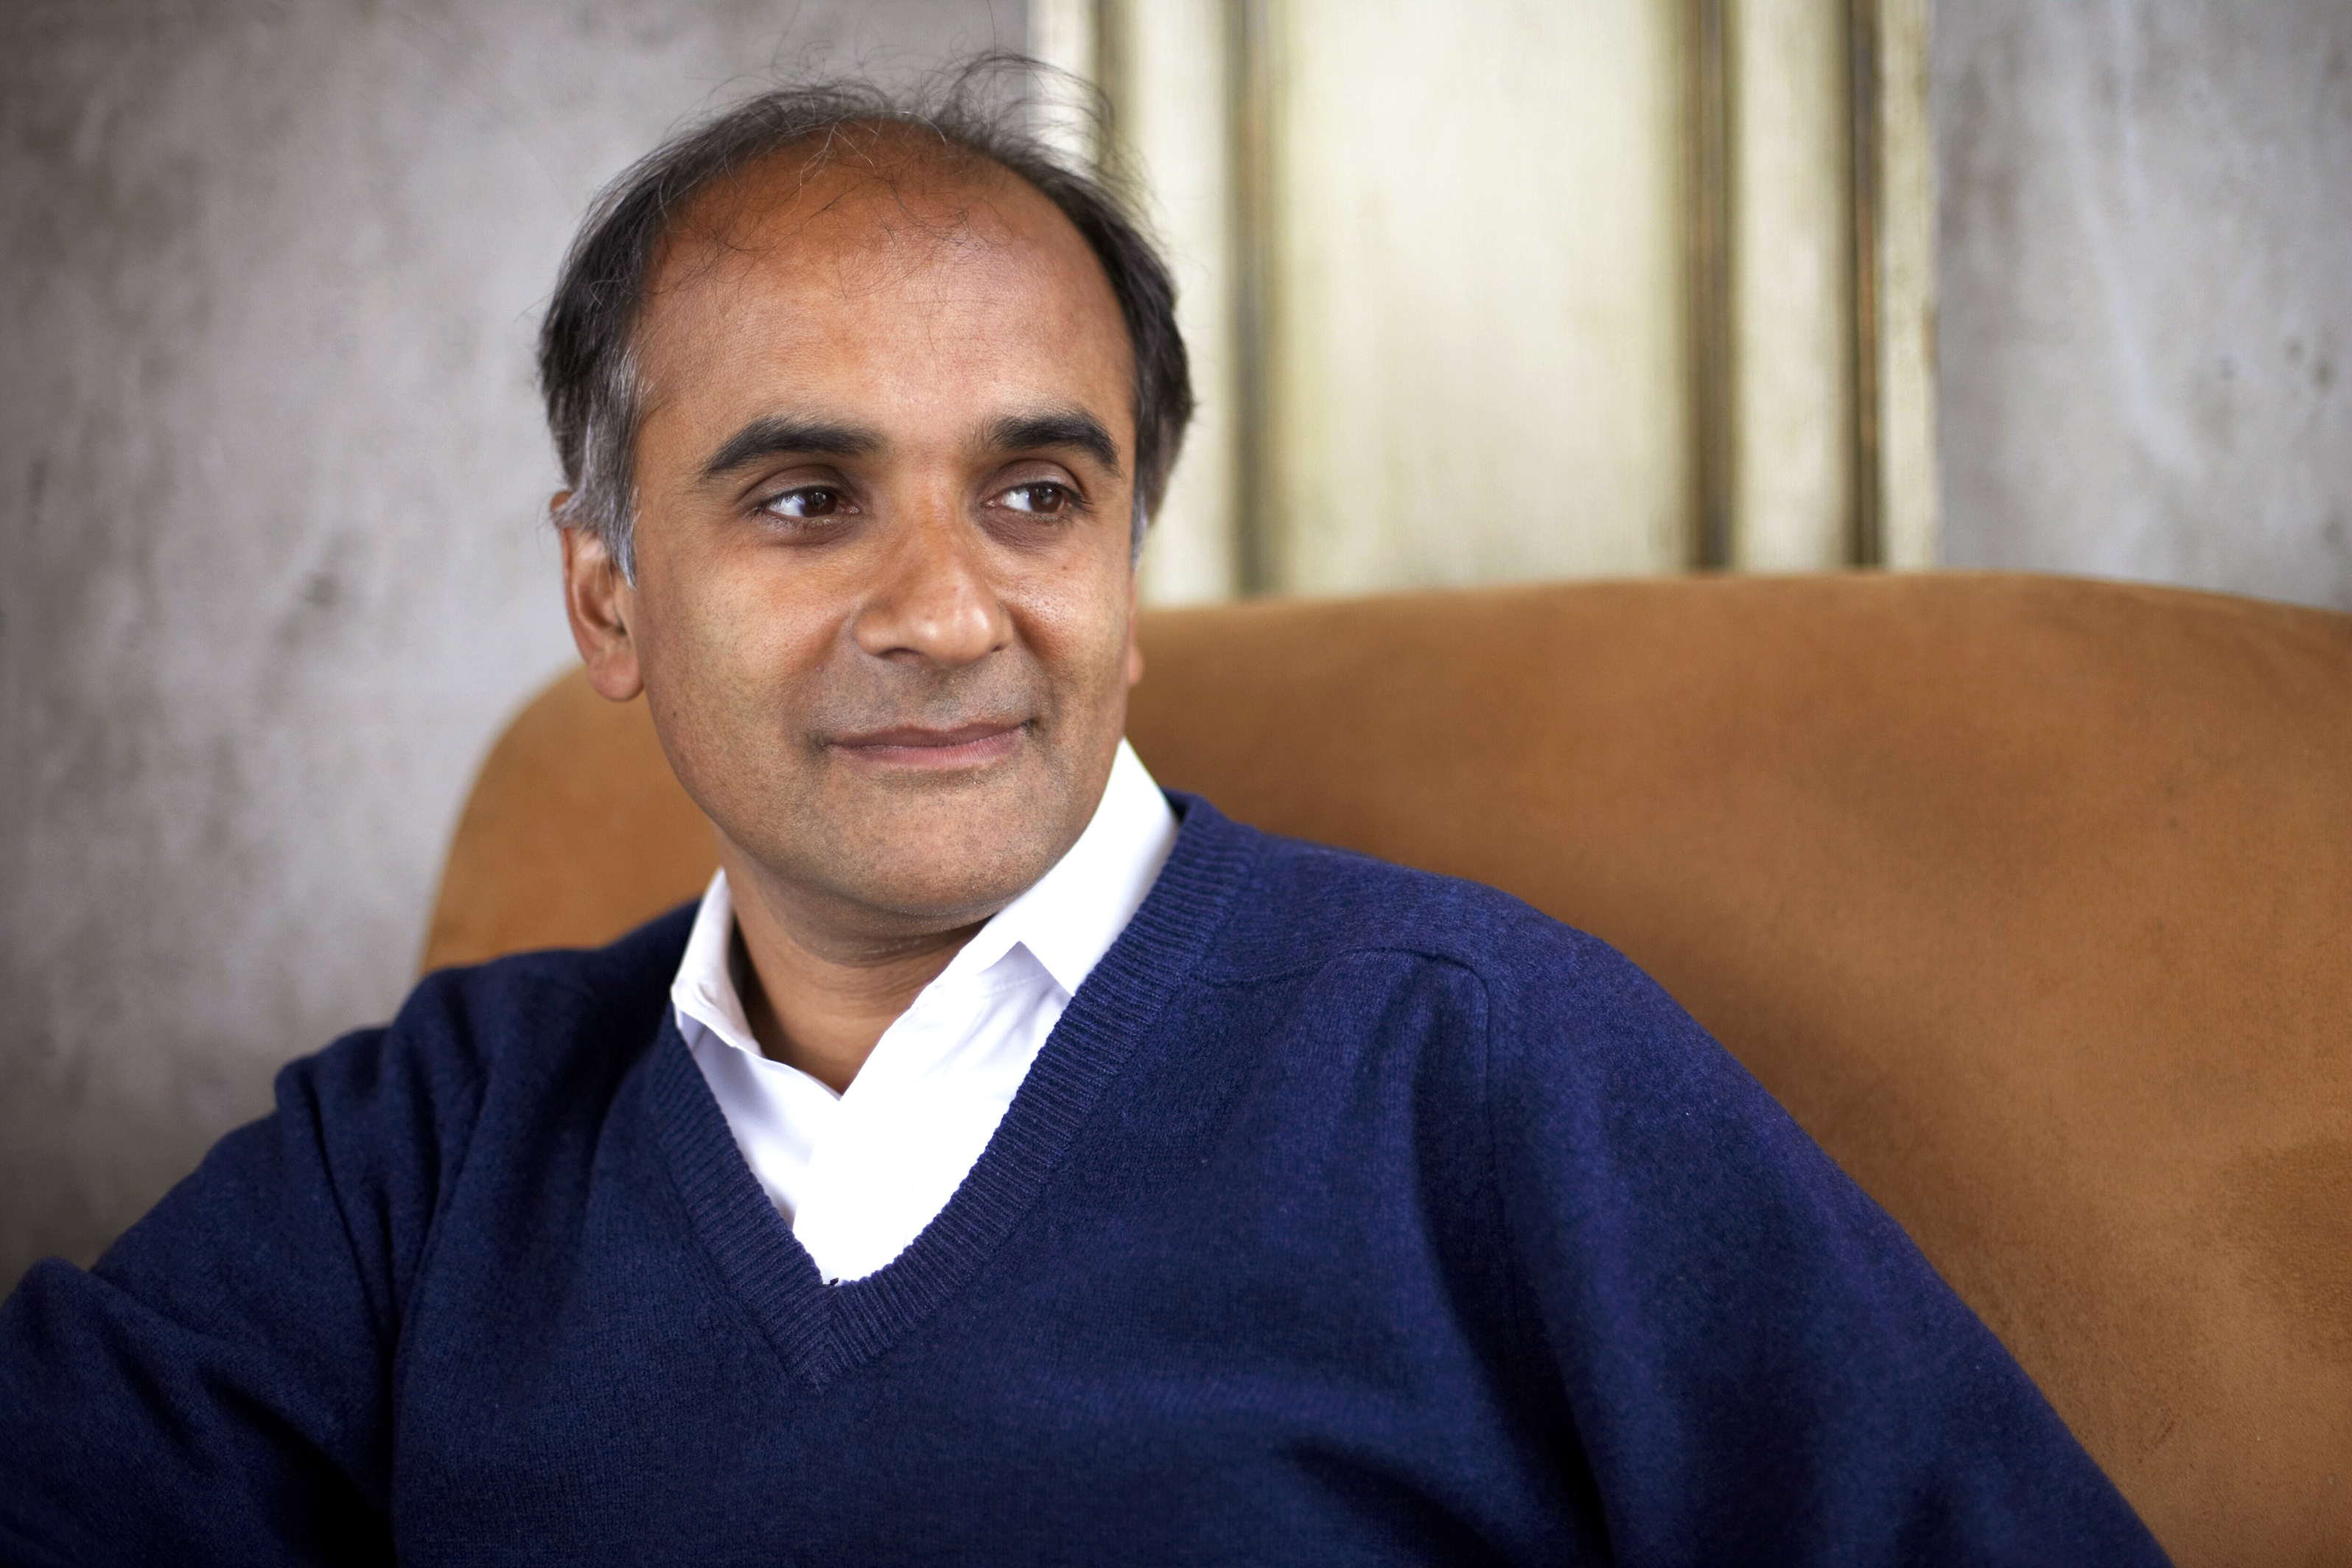 Pico Iyer returns to campus Wednesday, April 10.